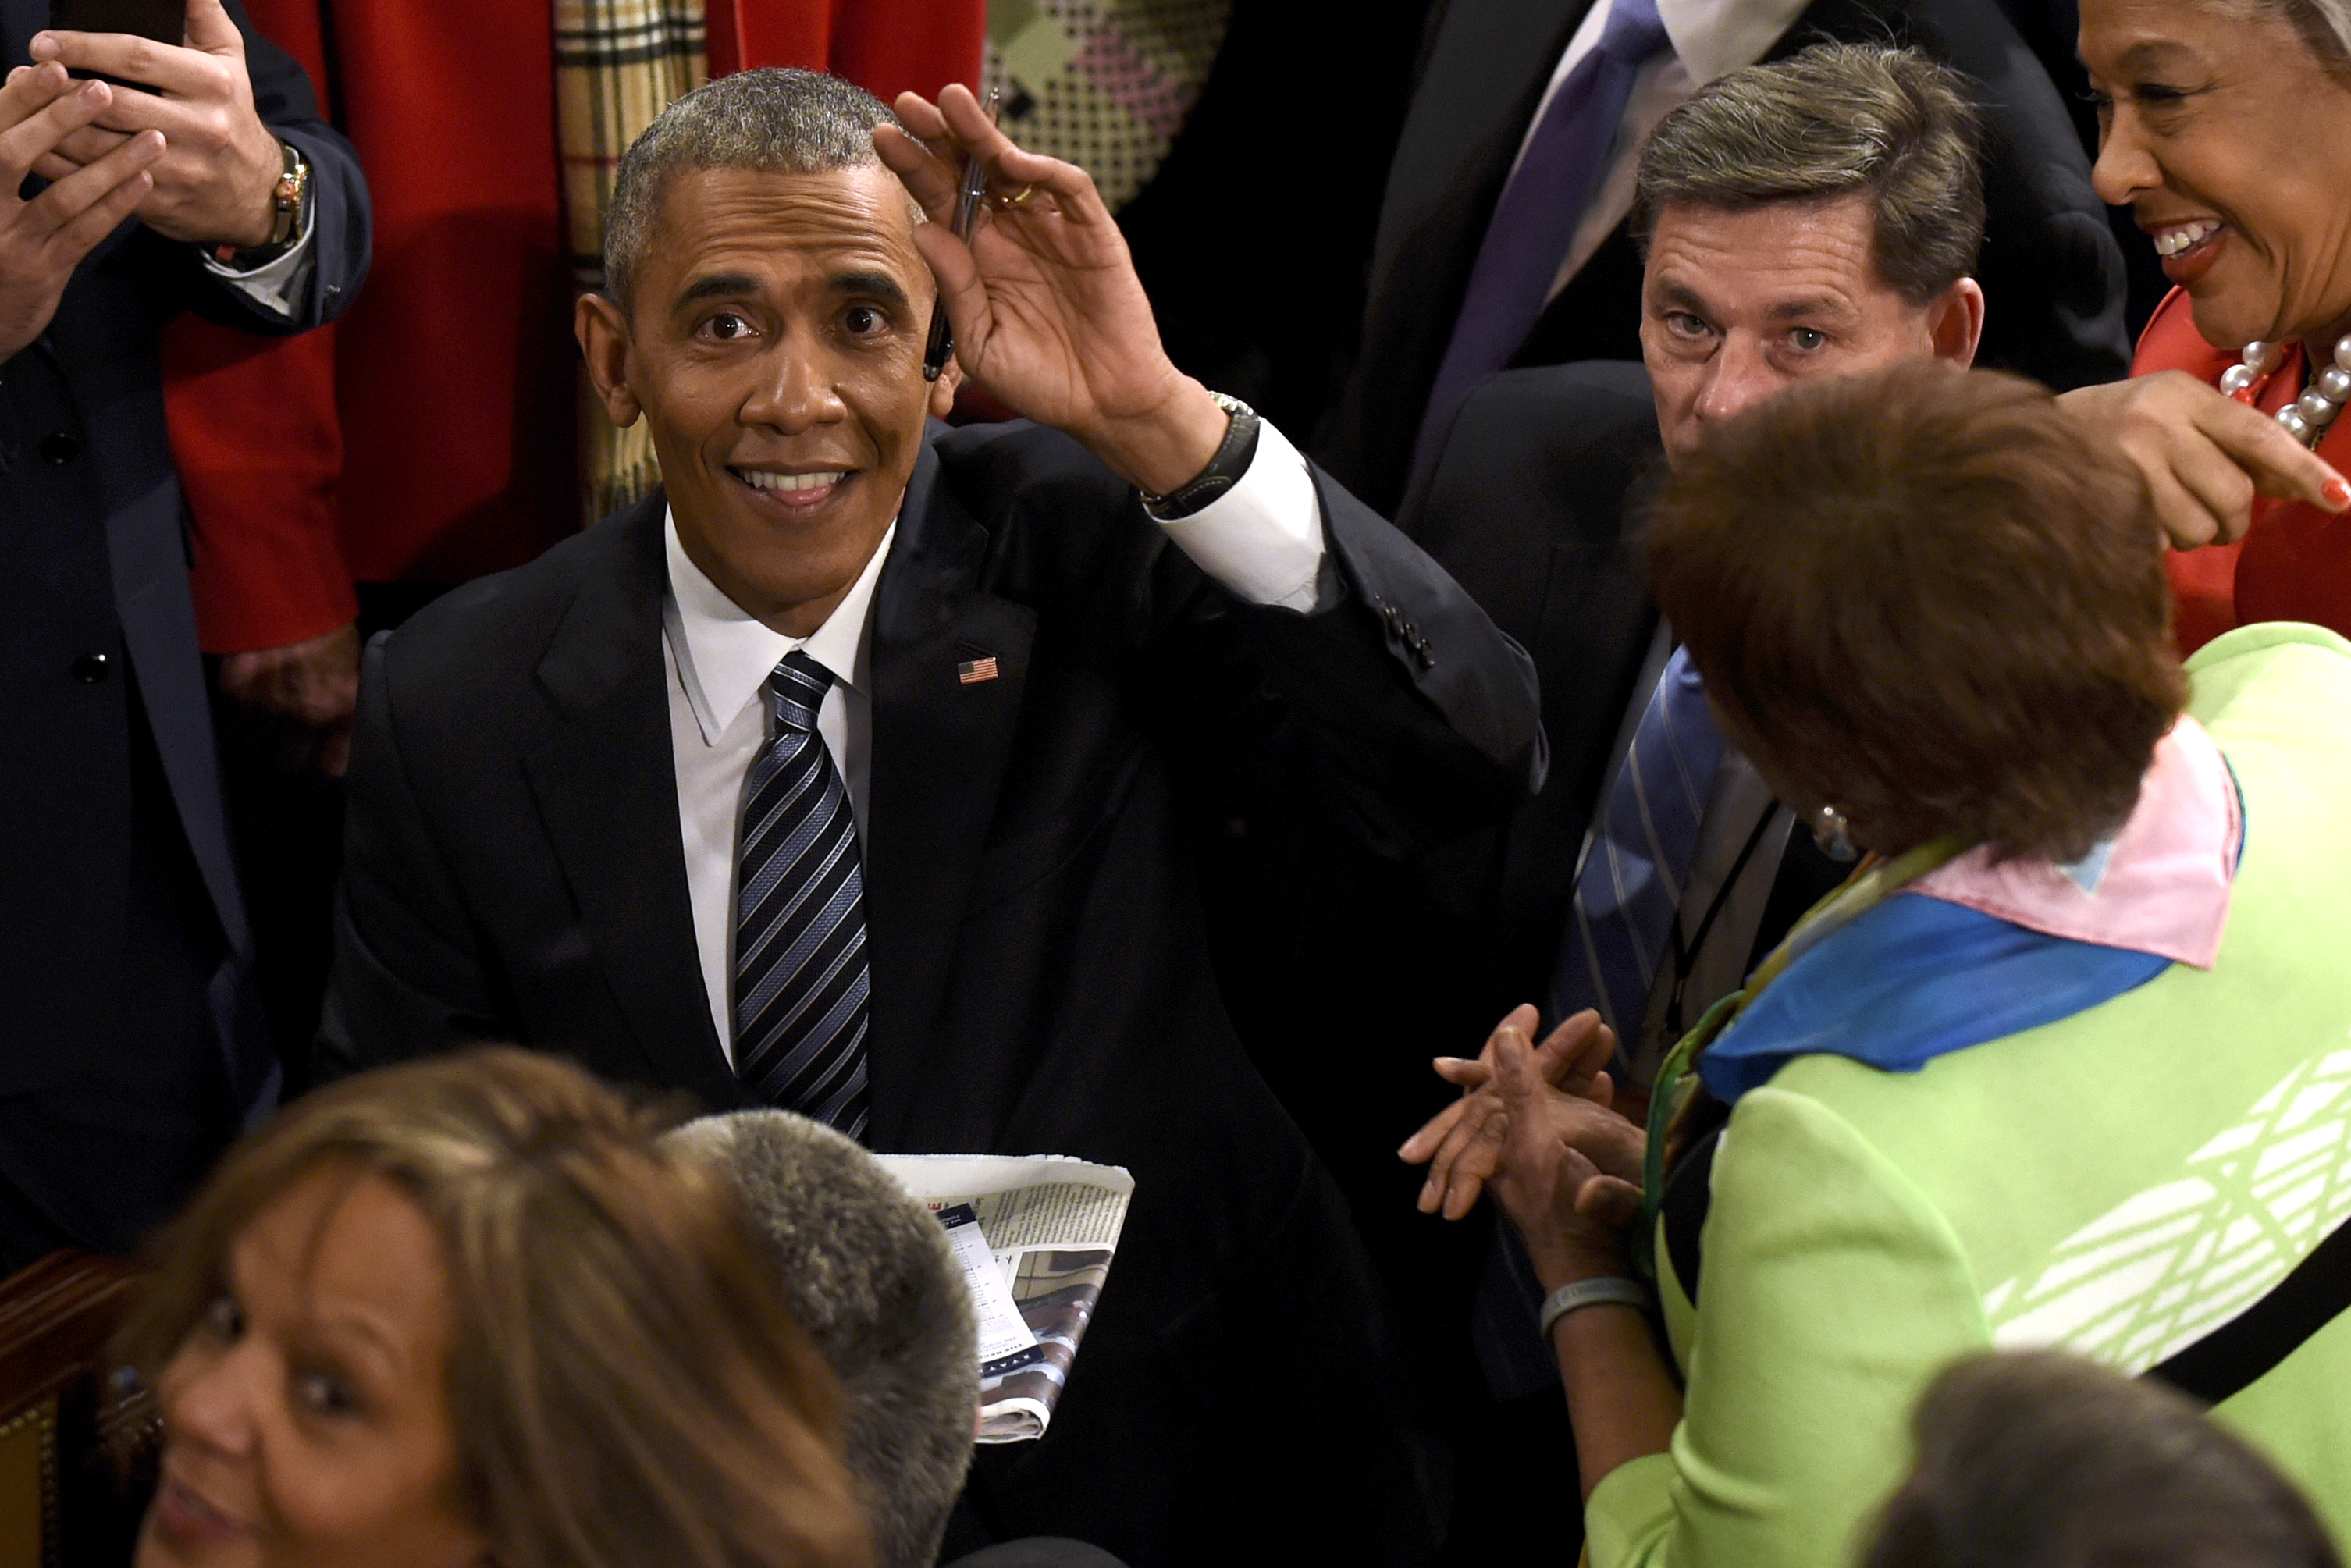 an analysis of president barrack obamas final state of the union address